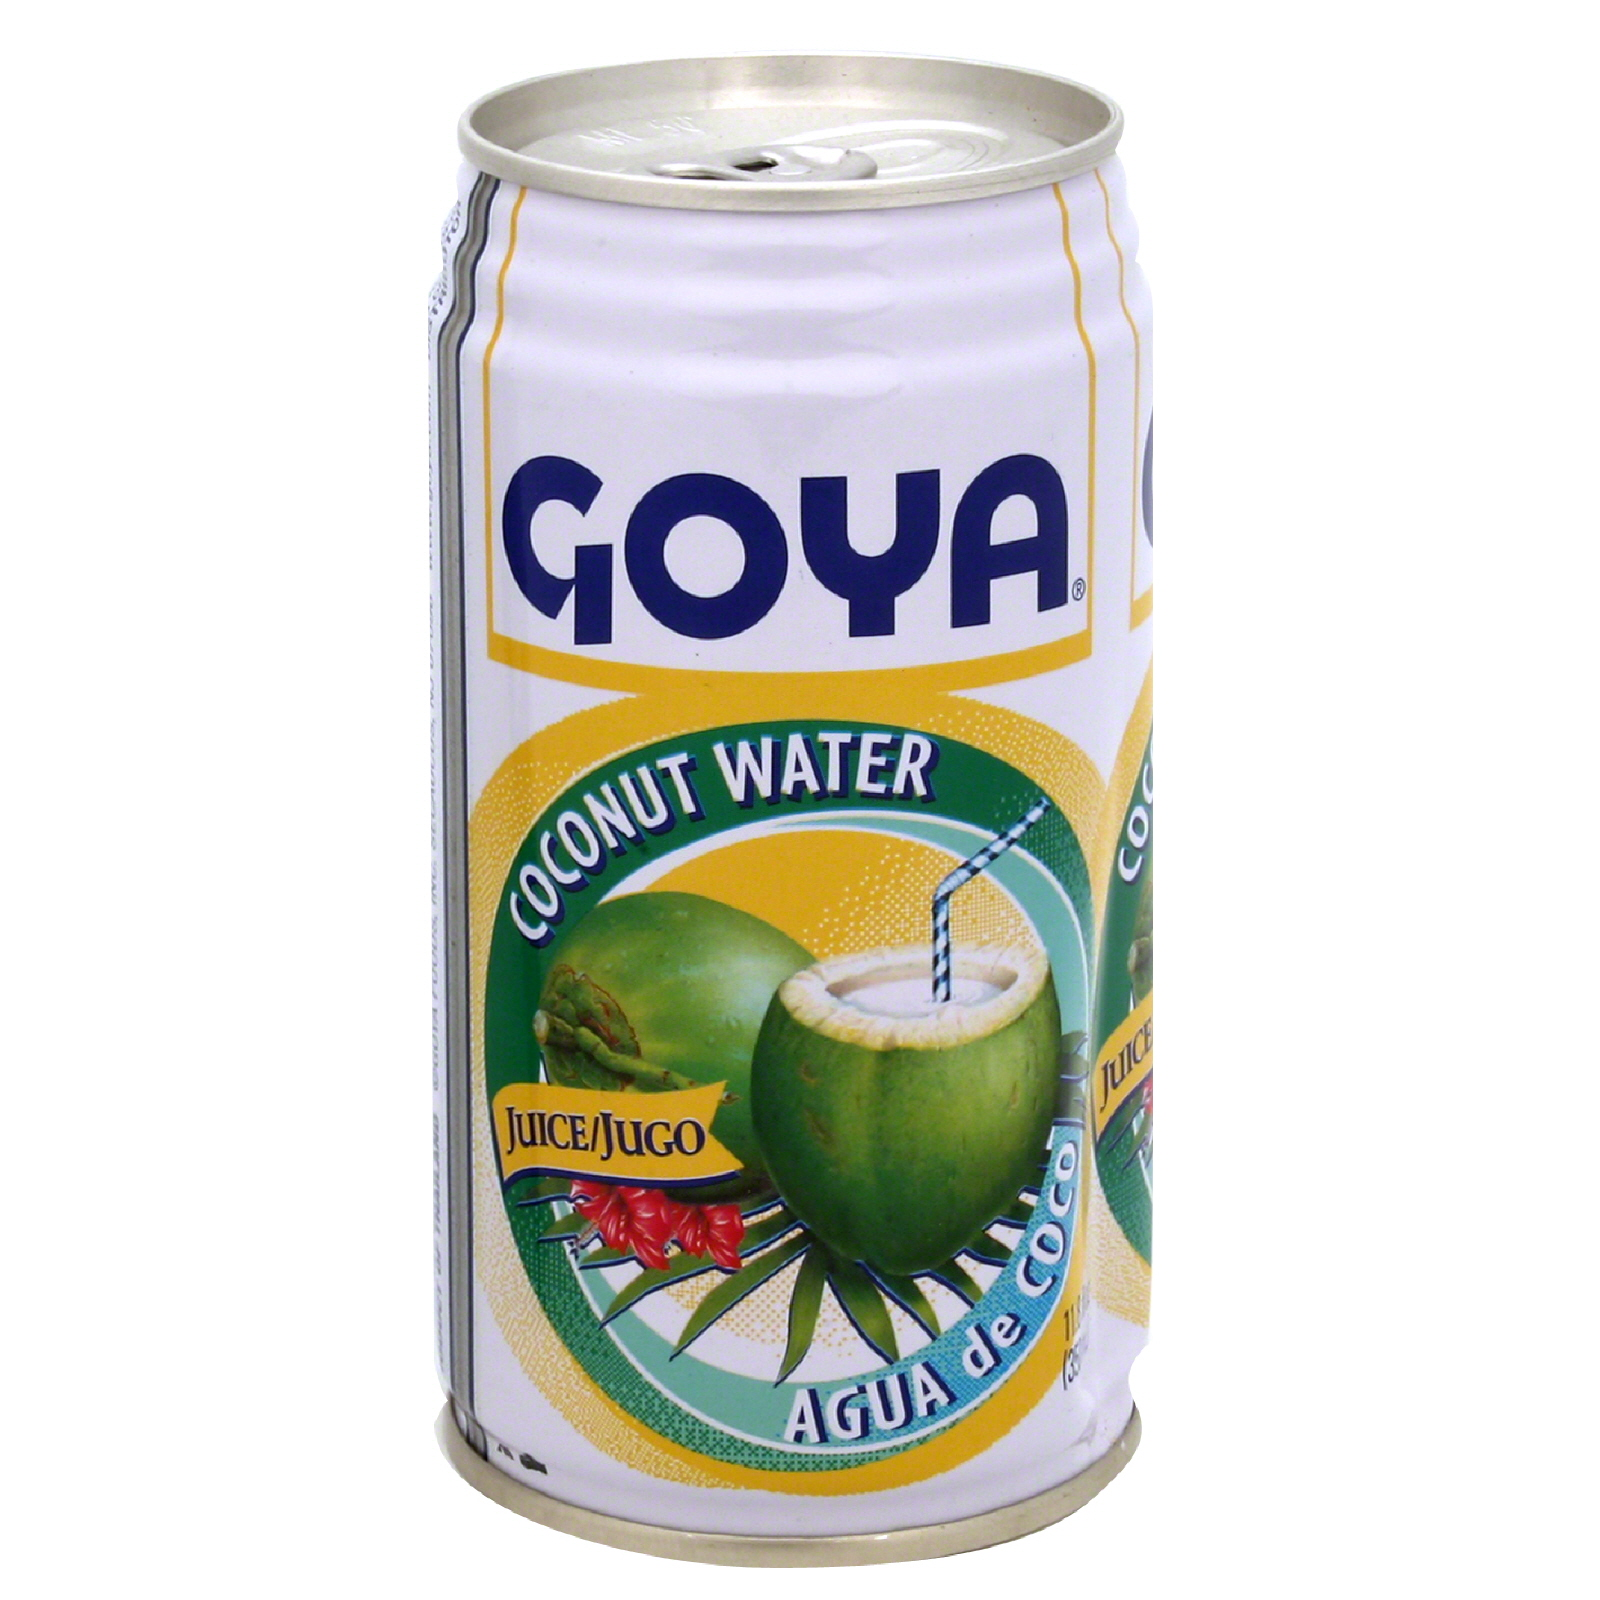 Goya Coconut Water 11.8 Fl Oz 350 Ml - Food & Grocery